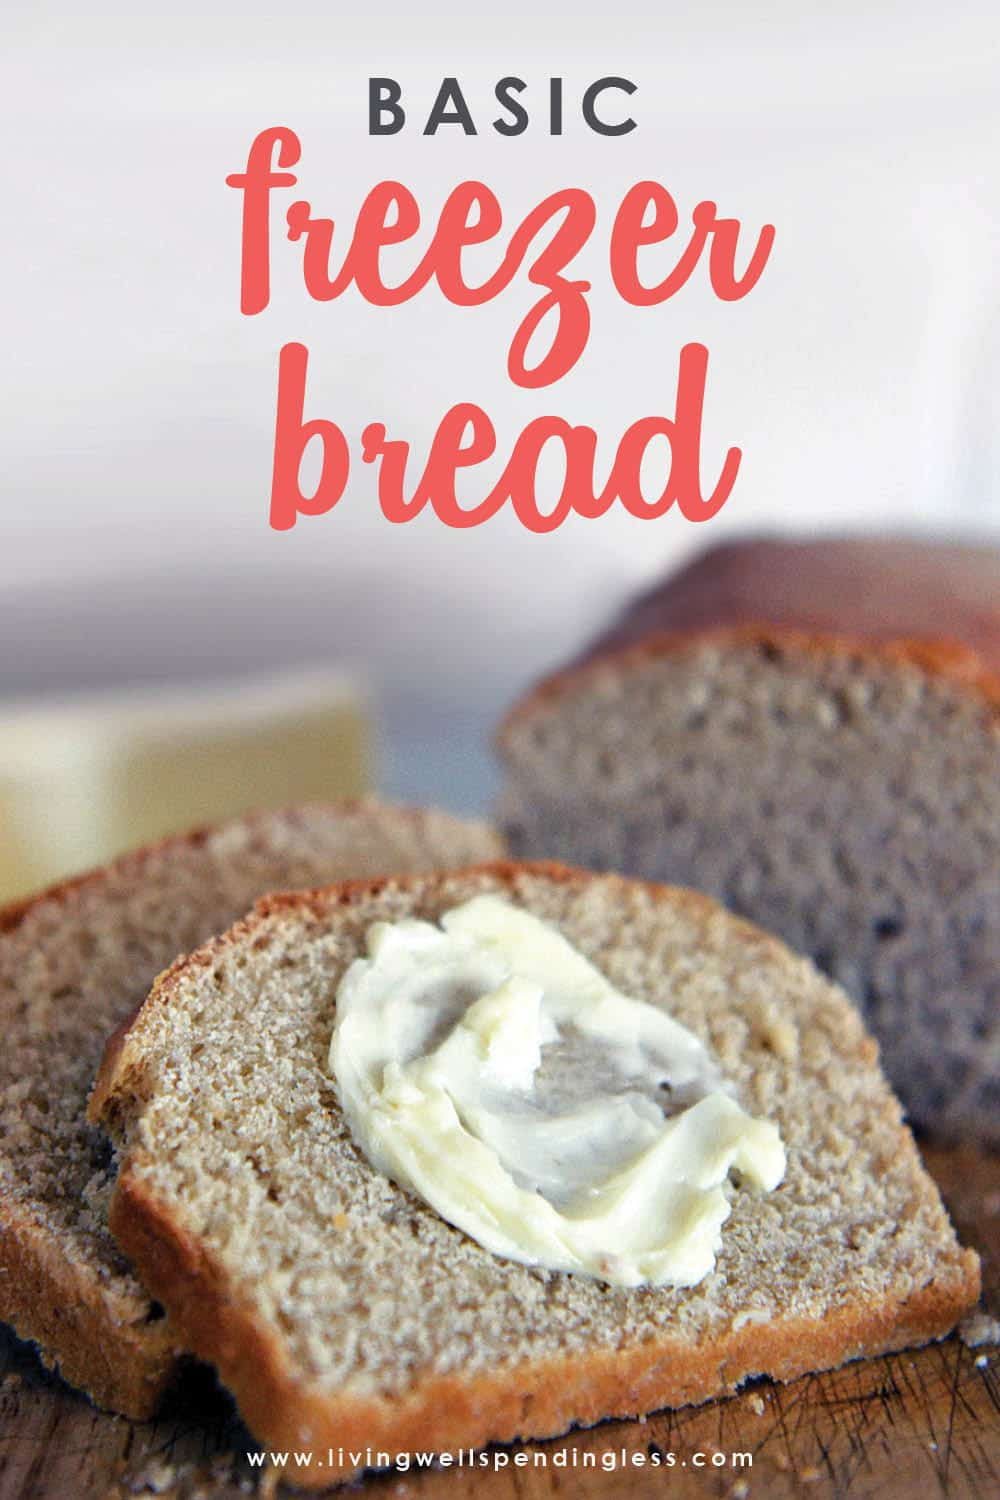 What's better than freshly baked bread? Fresh-baked bread that's easy to make and delicious! This simple but delicious basic freezer bread recipe makes enough dough for four loaves—just mix it, knead it, let it rise and freeze it until you need it. #freezerbread #homemadebread #freezerrecipes #stockpilerecipes #prepping #preppers #prepperrecipes #homesteading